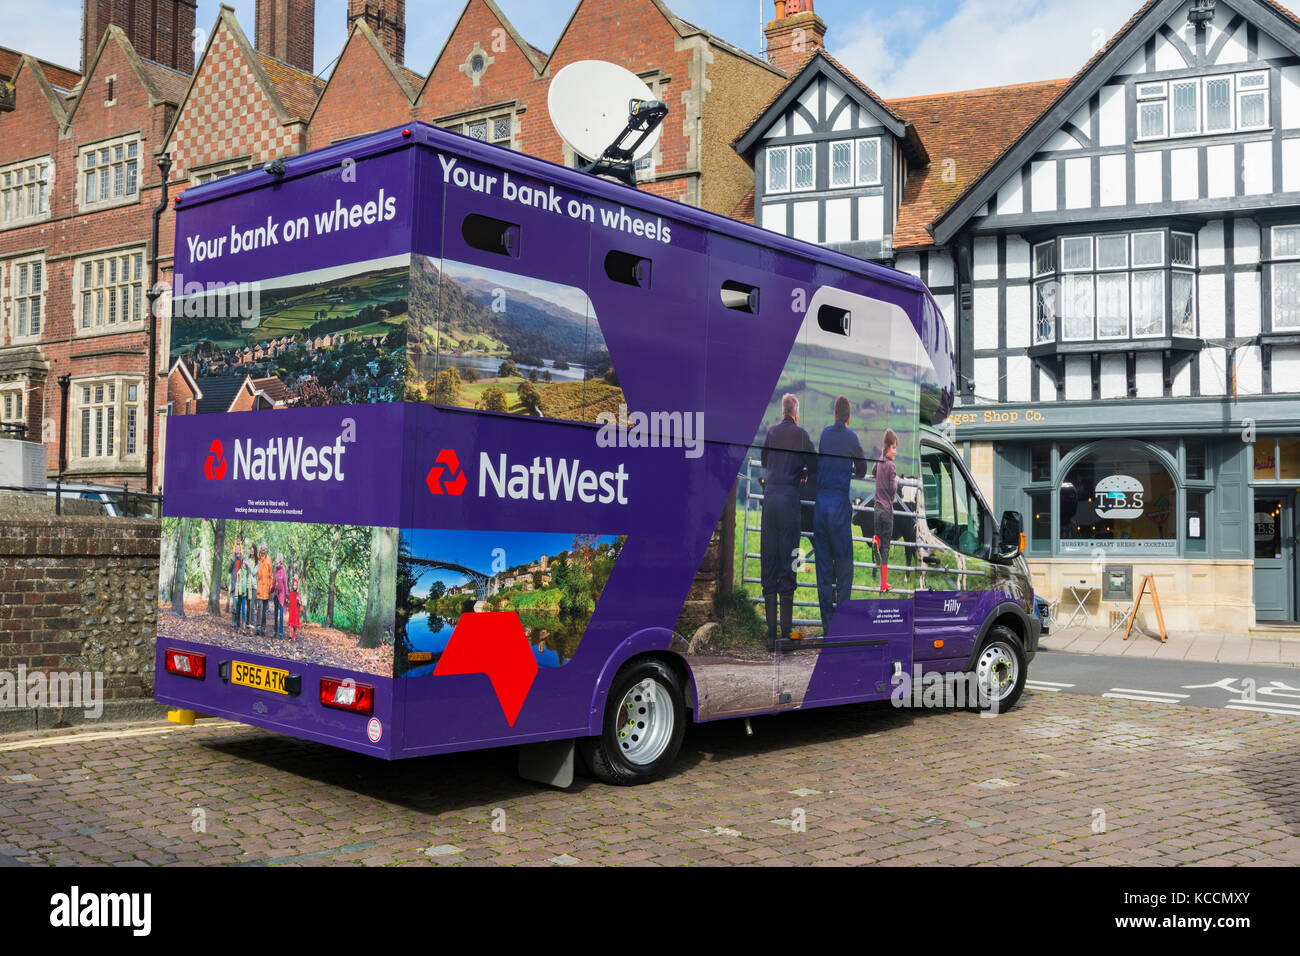 NetWest bank on wheels van for mobile banking in Arundel, West Sussex, England, UK. - Stock Image